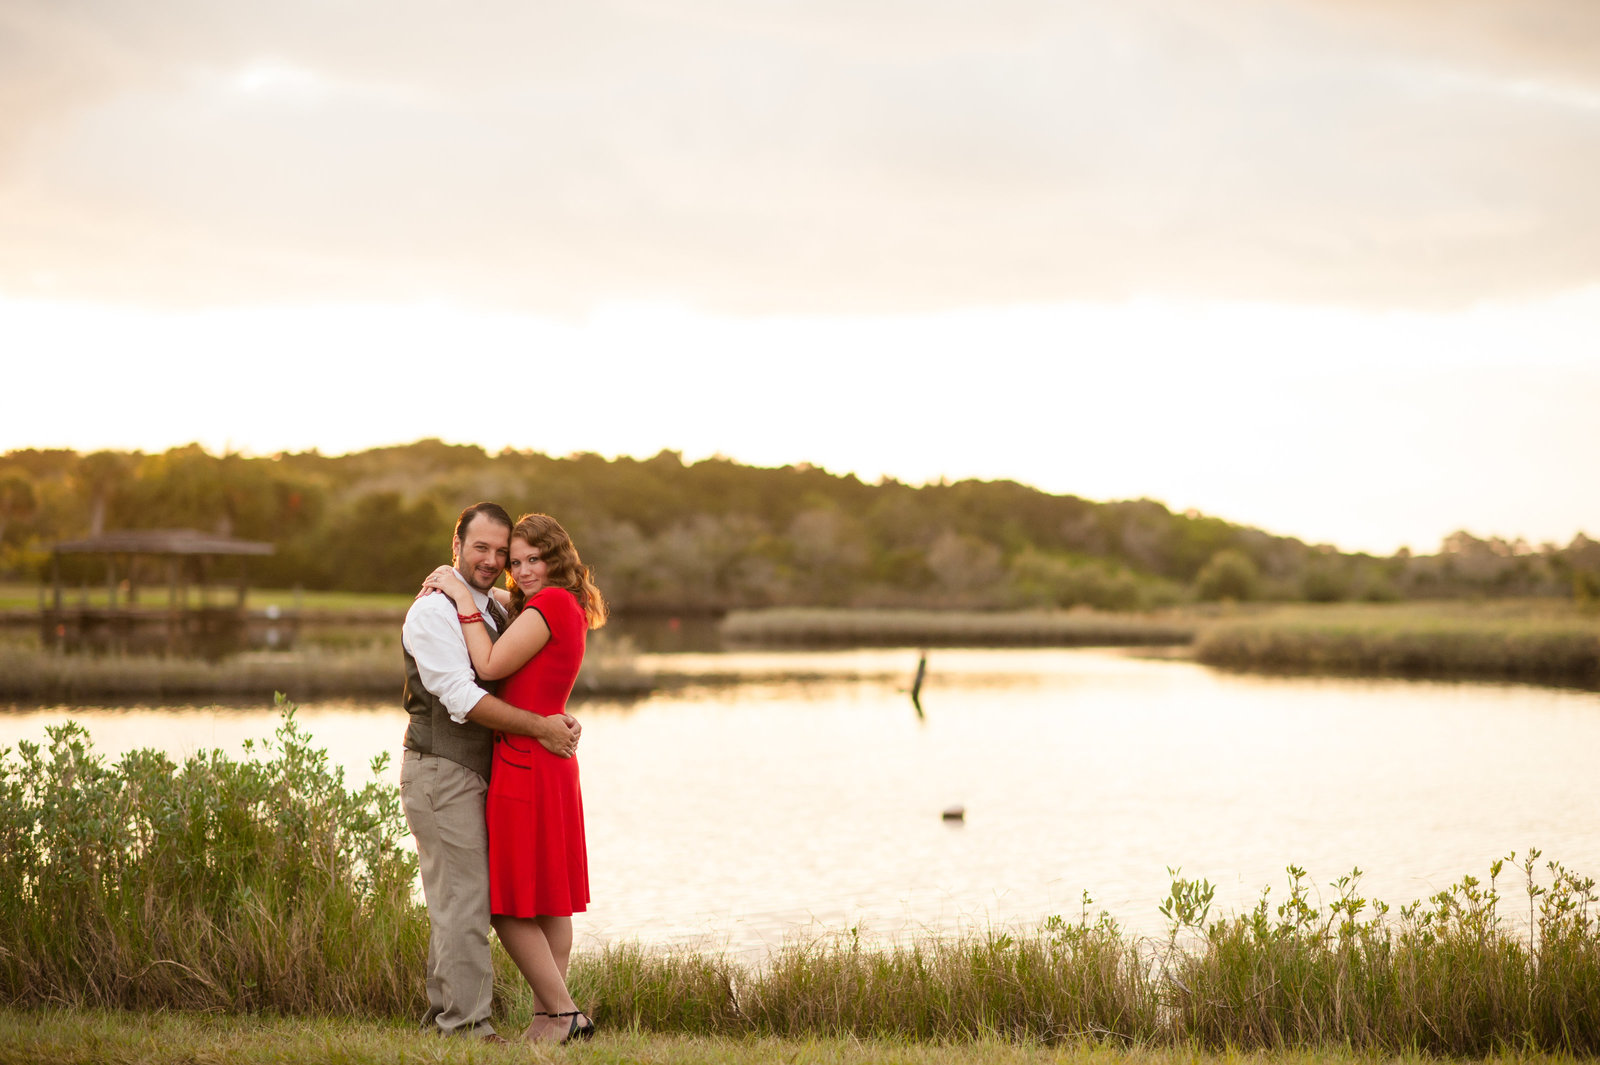 New Smyrna Beach engagement photography (1)